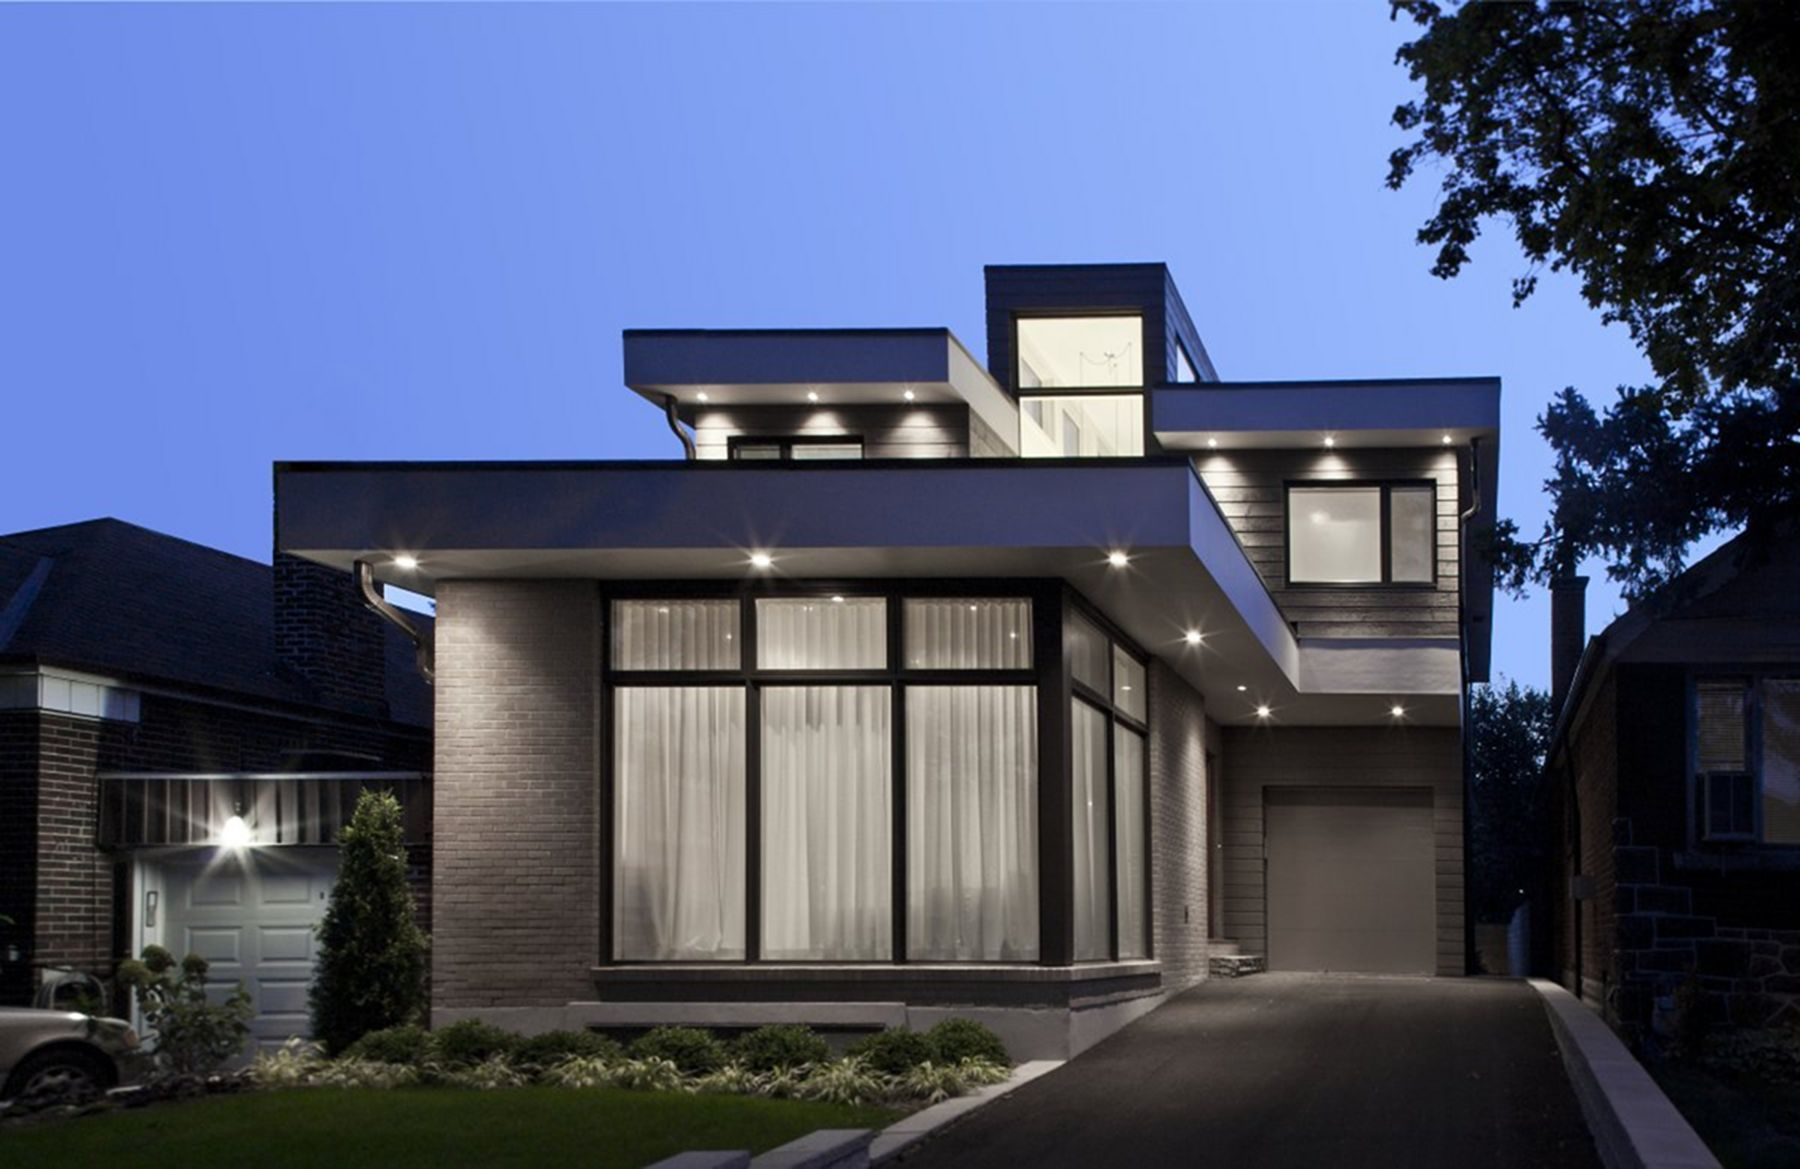 40 Examples Of Stunning Houses Architecture 3 Eco House Design Architecture House Small Modern Home